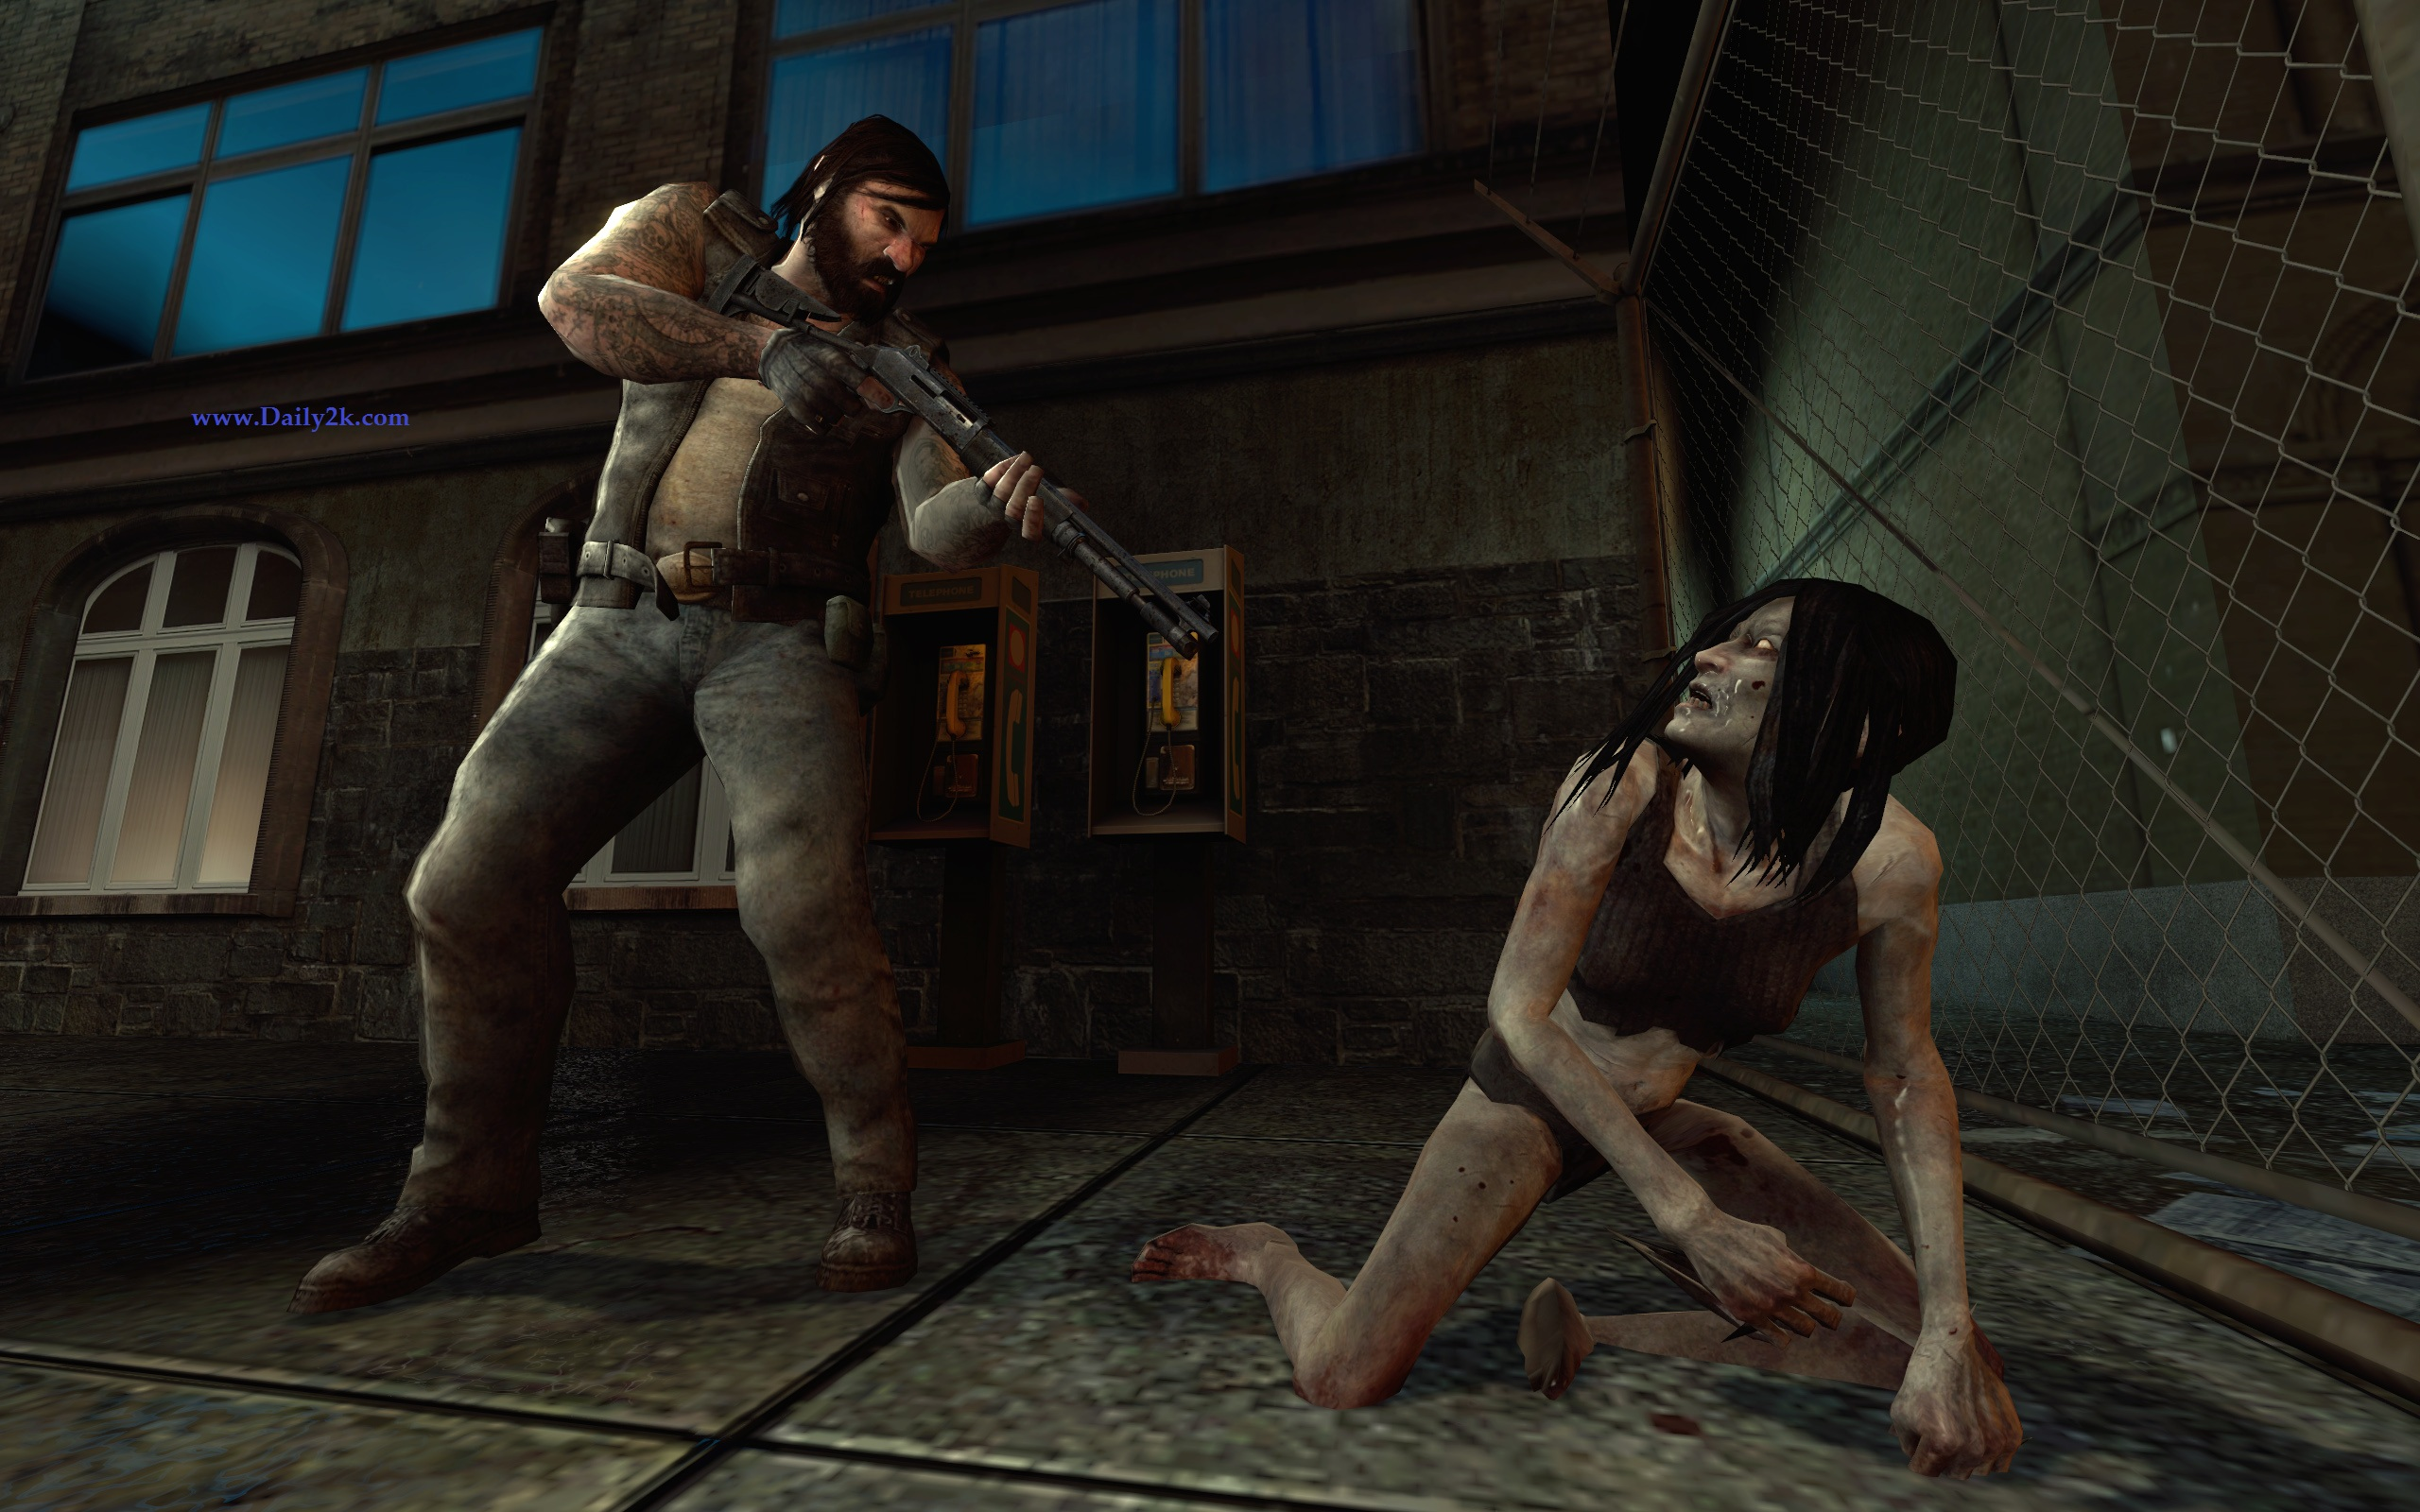 Left-4-Dead-Free-download-Daily2k